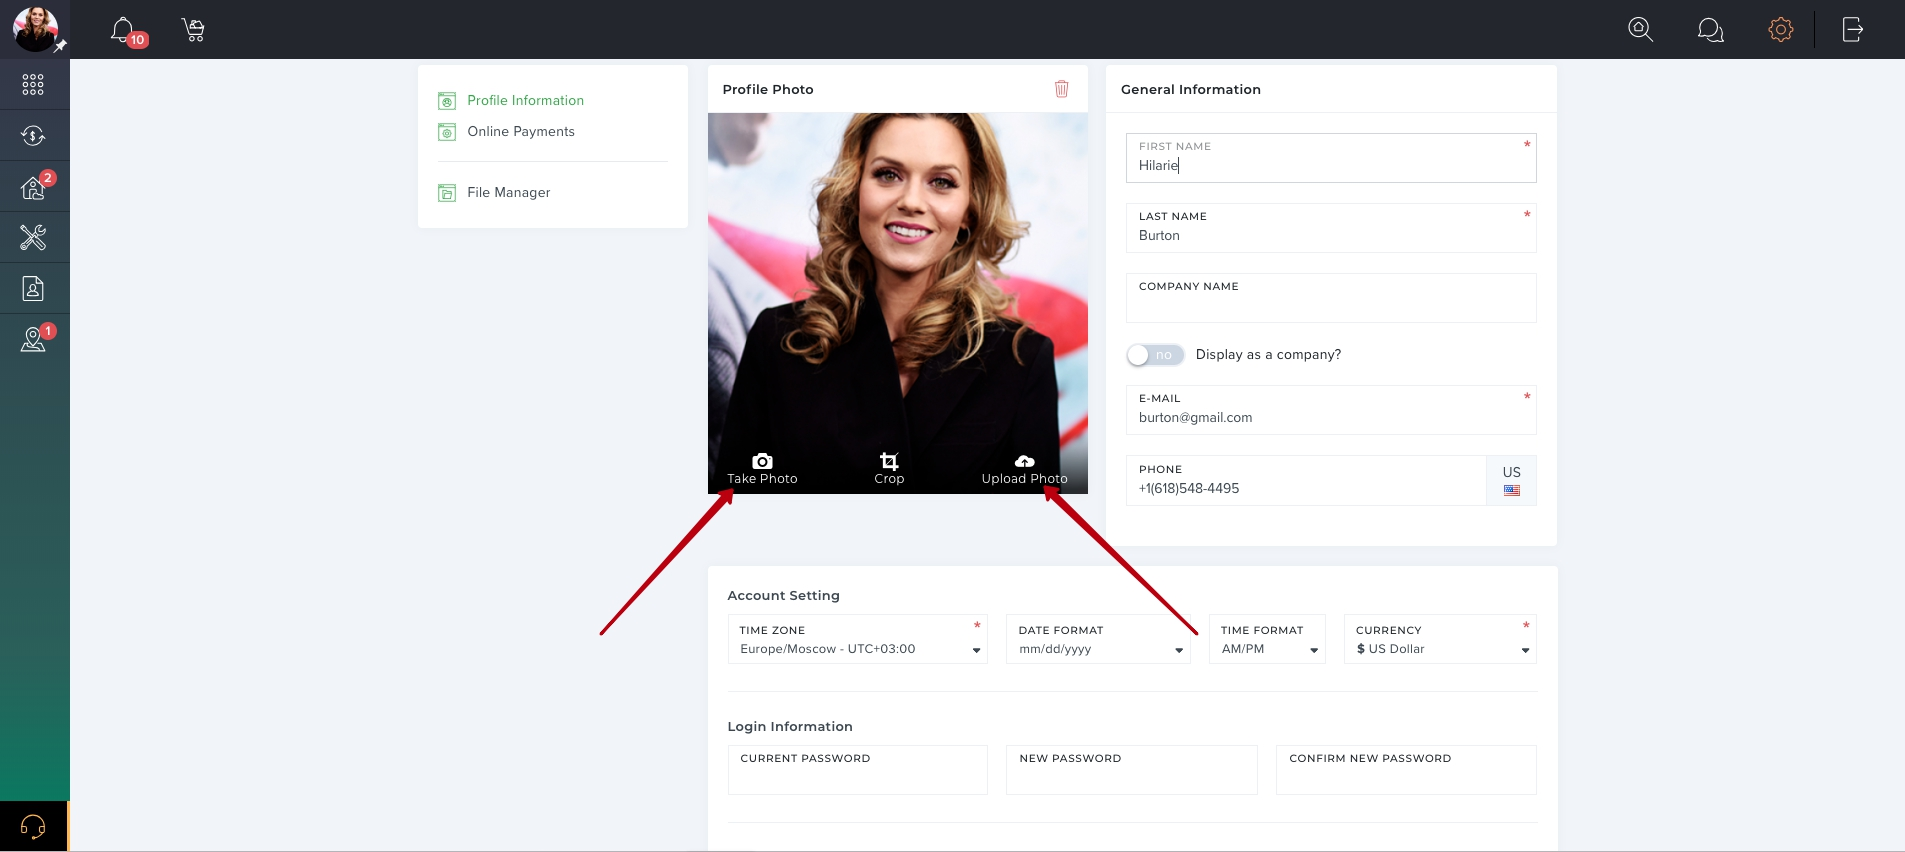 How to upload account profile photo?